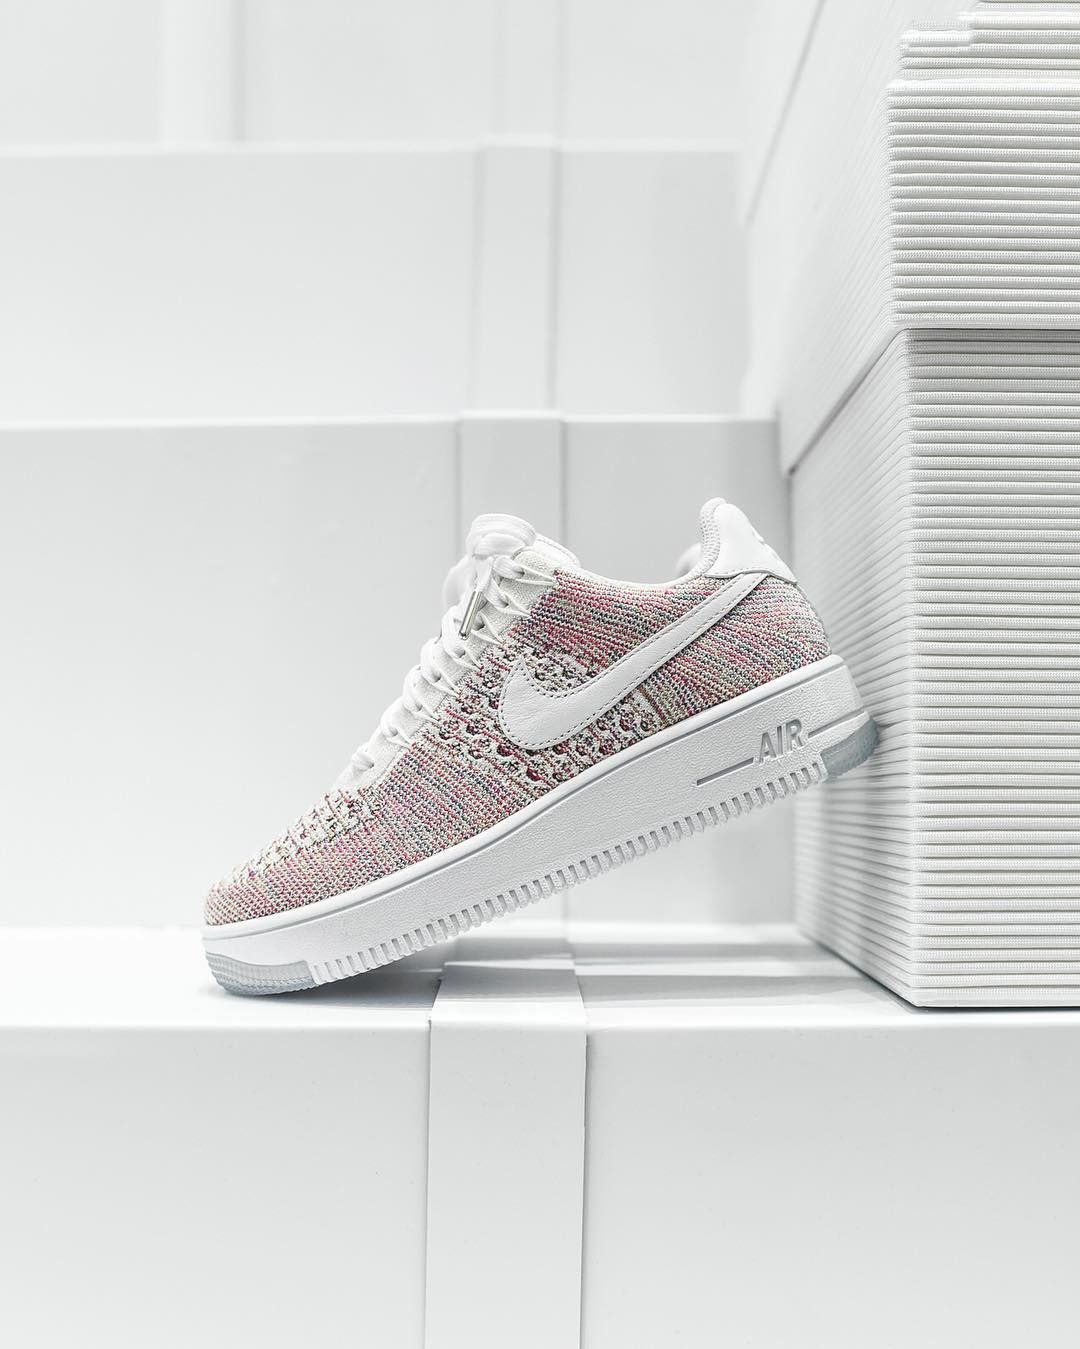 finest selection b1336 33eed Nike WMNS Air Force 1 Flyknit Low. Available at the Kith Women s Store Kith  Brooklyn and KithNYC.com.  160 USD. by kith